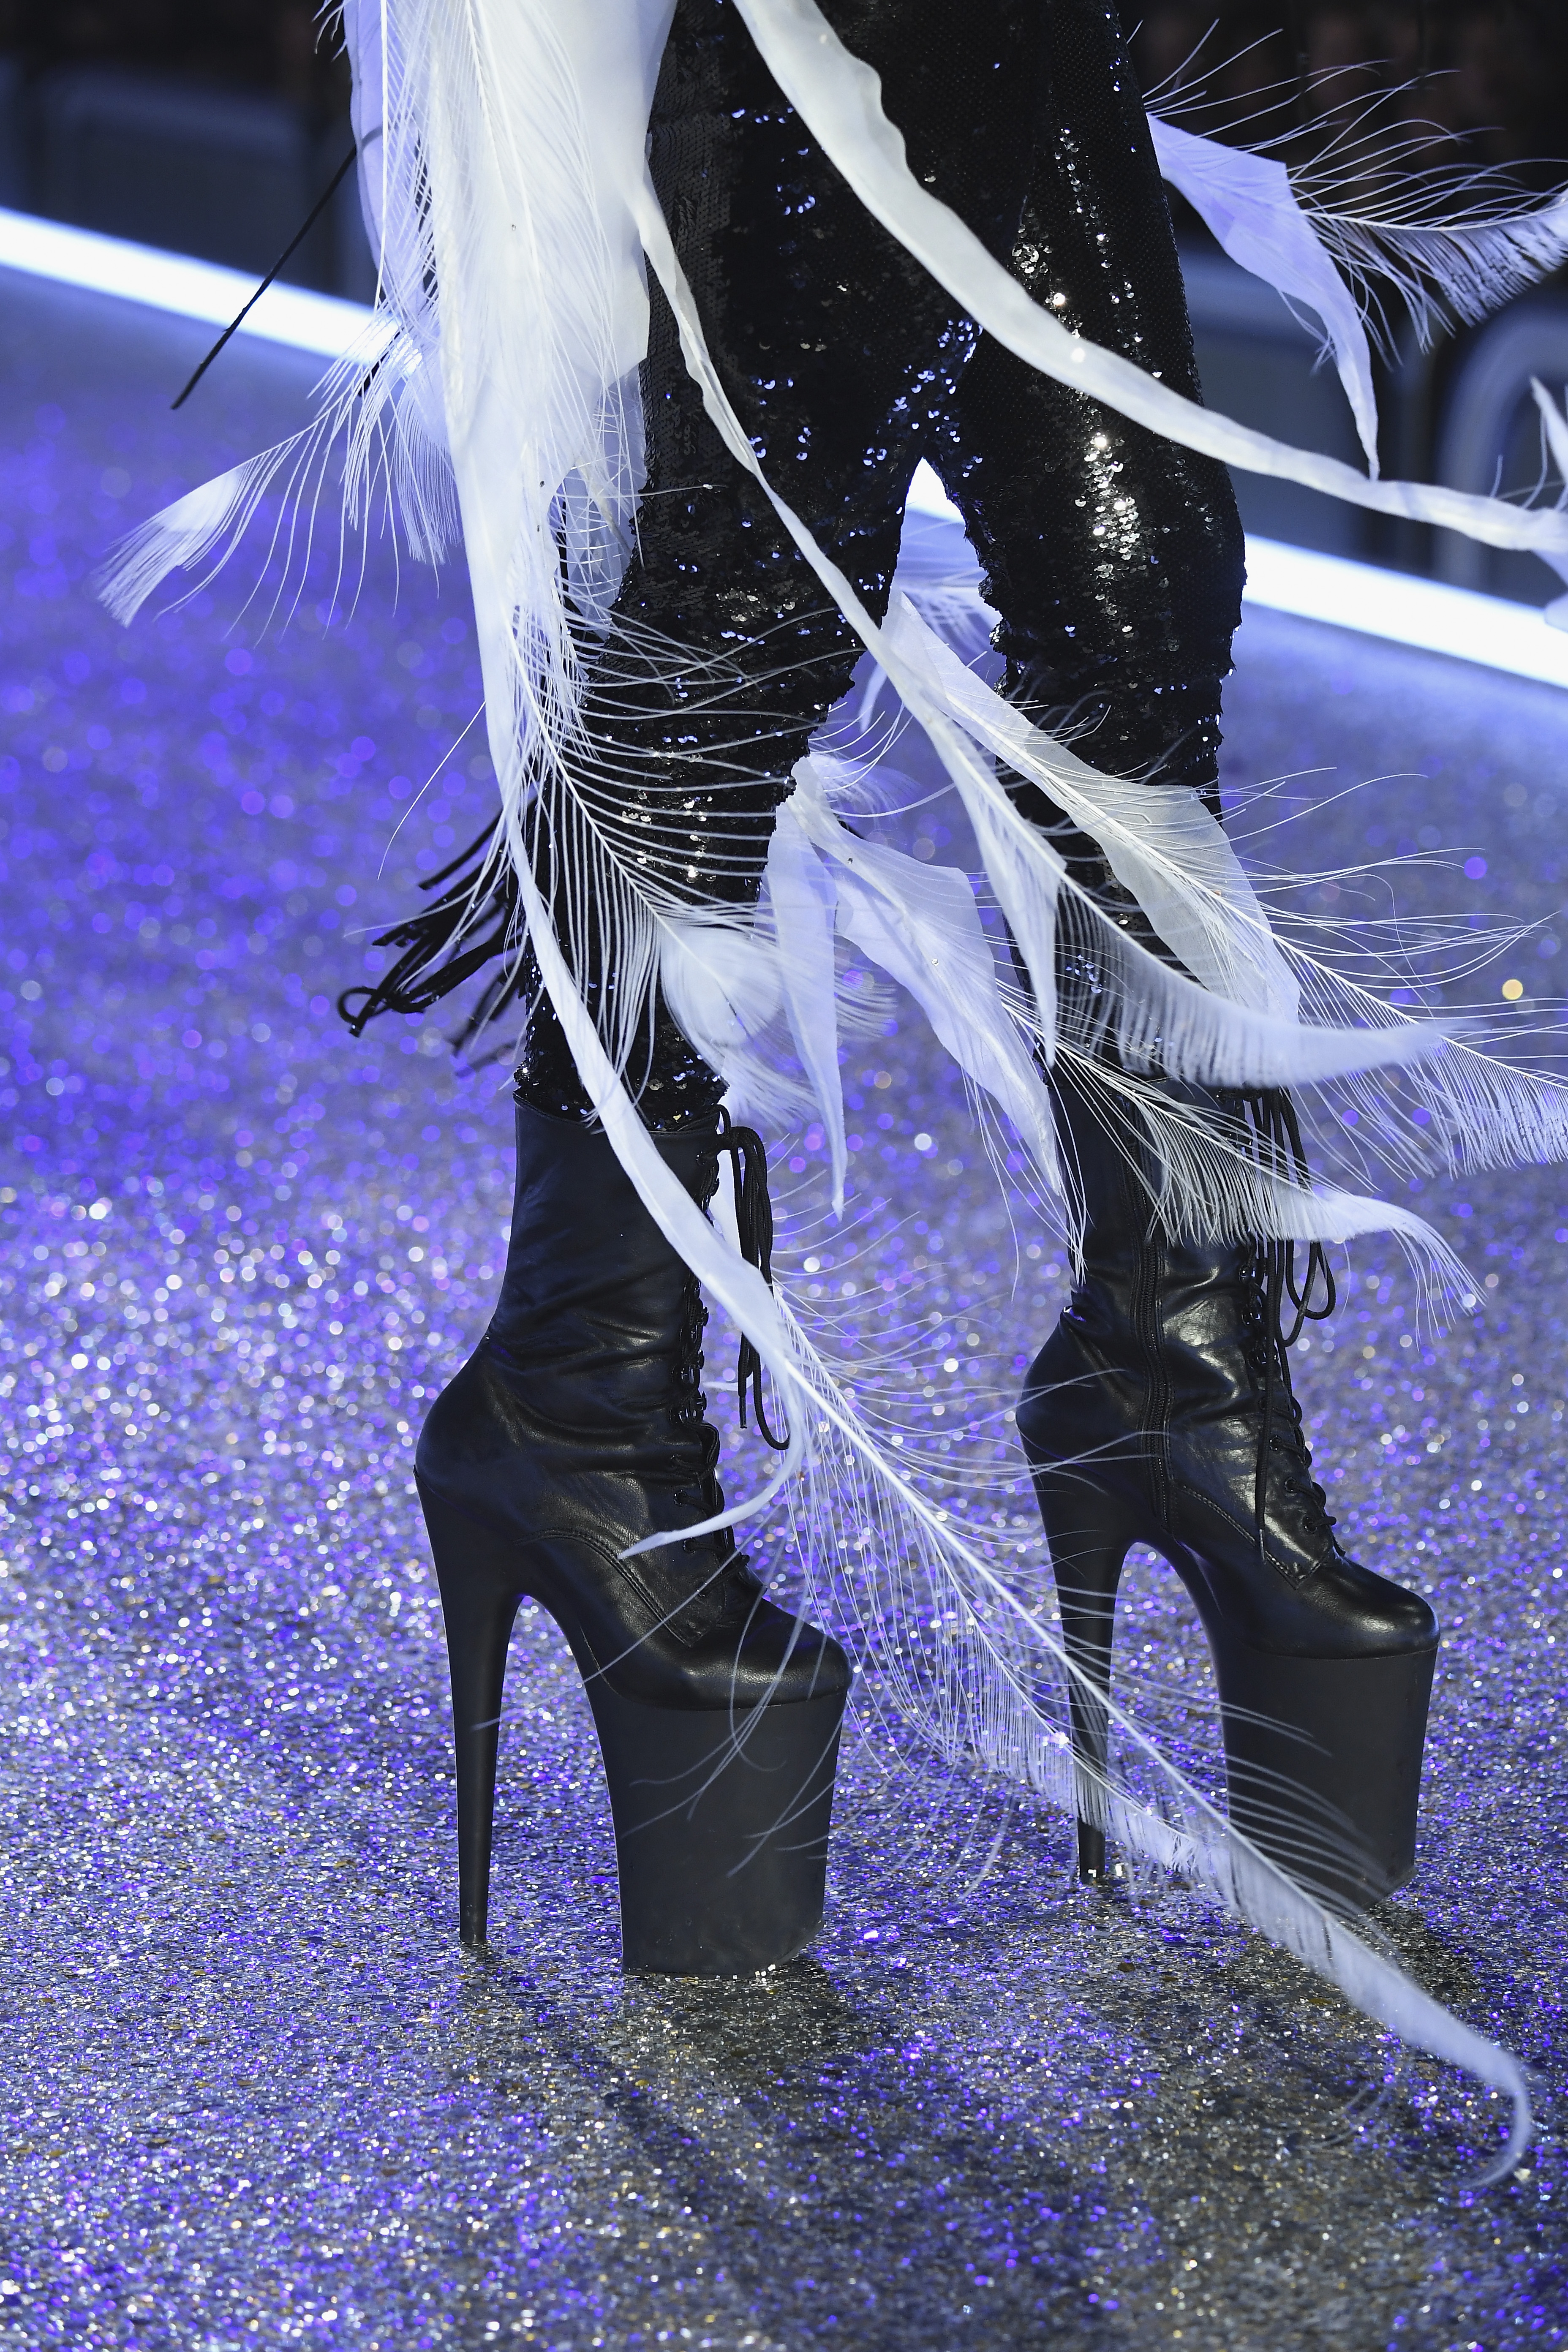 PARIS, FRANCE - NOVEMBER 30:  Lady Gaga performs during the Victoria's Secret Fashion Show on November 30, 2016 in Paris, France.  (Photo by Pascal Le Segretain/Getty Images for Victoria's Secret)